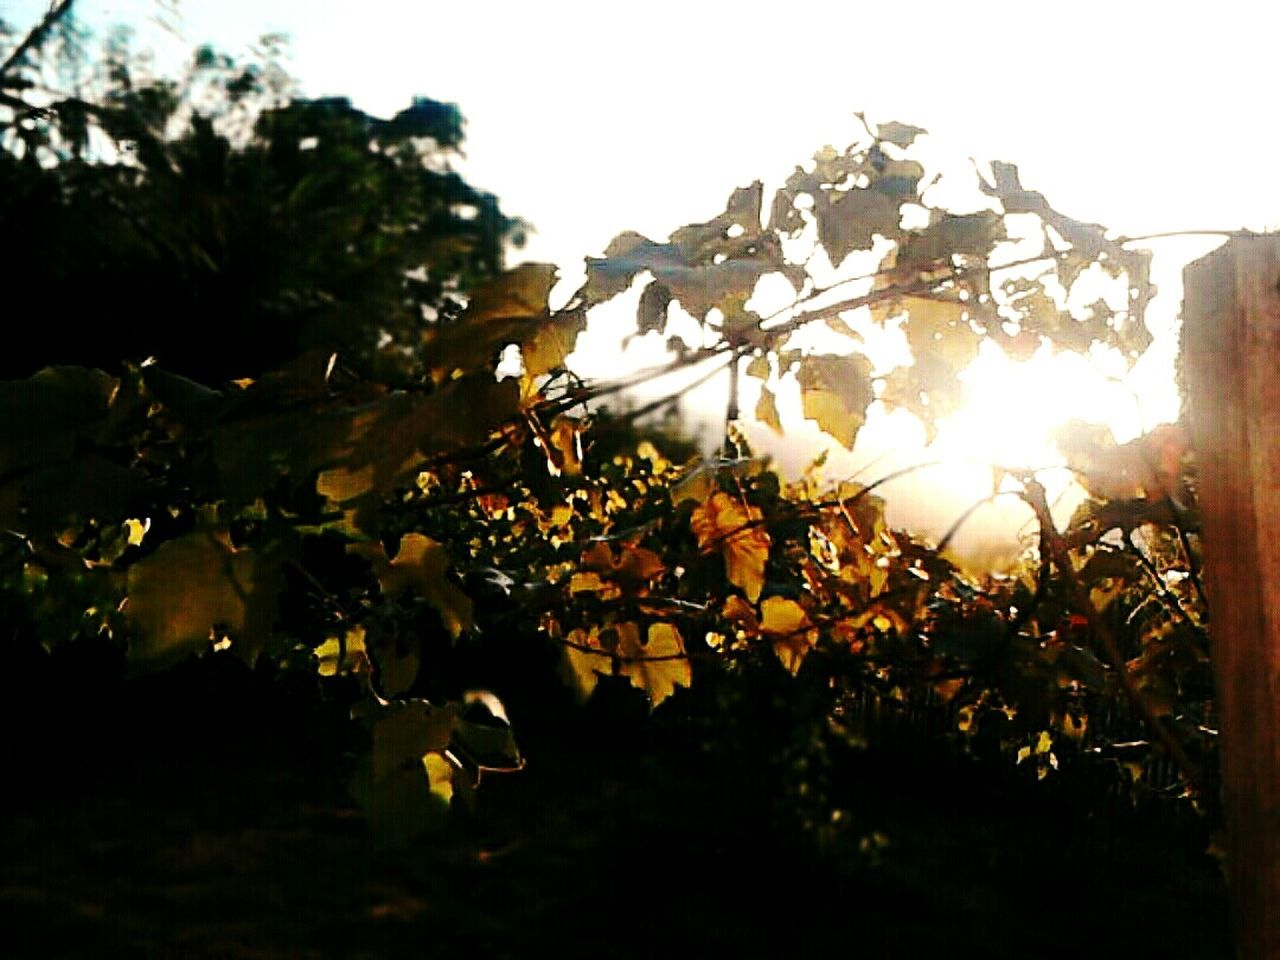 Uvas Manhã De Sol Parreiras Grama Sol Luz Do Sol Grape Sun Meu Mundo Sky Nature Natureza Sunlight Relaxing